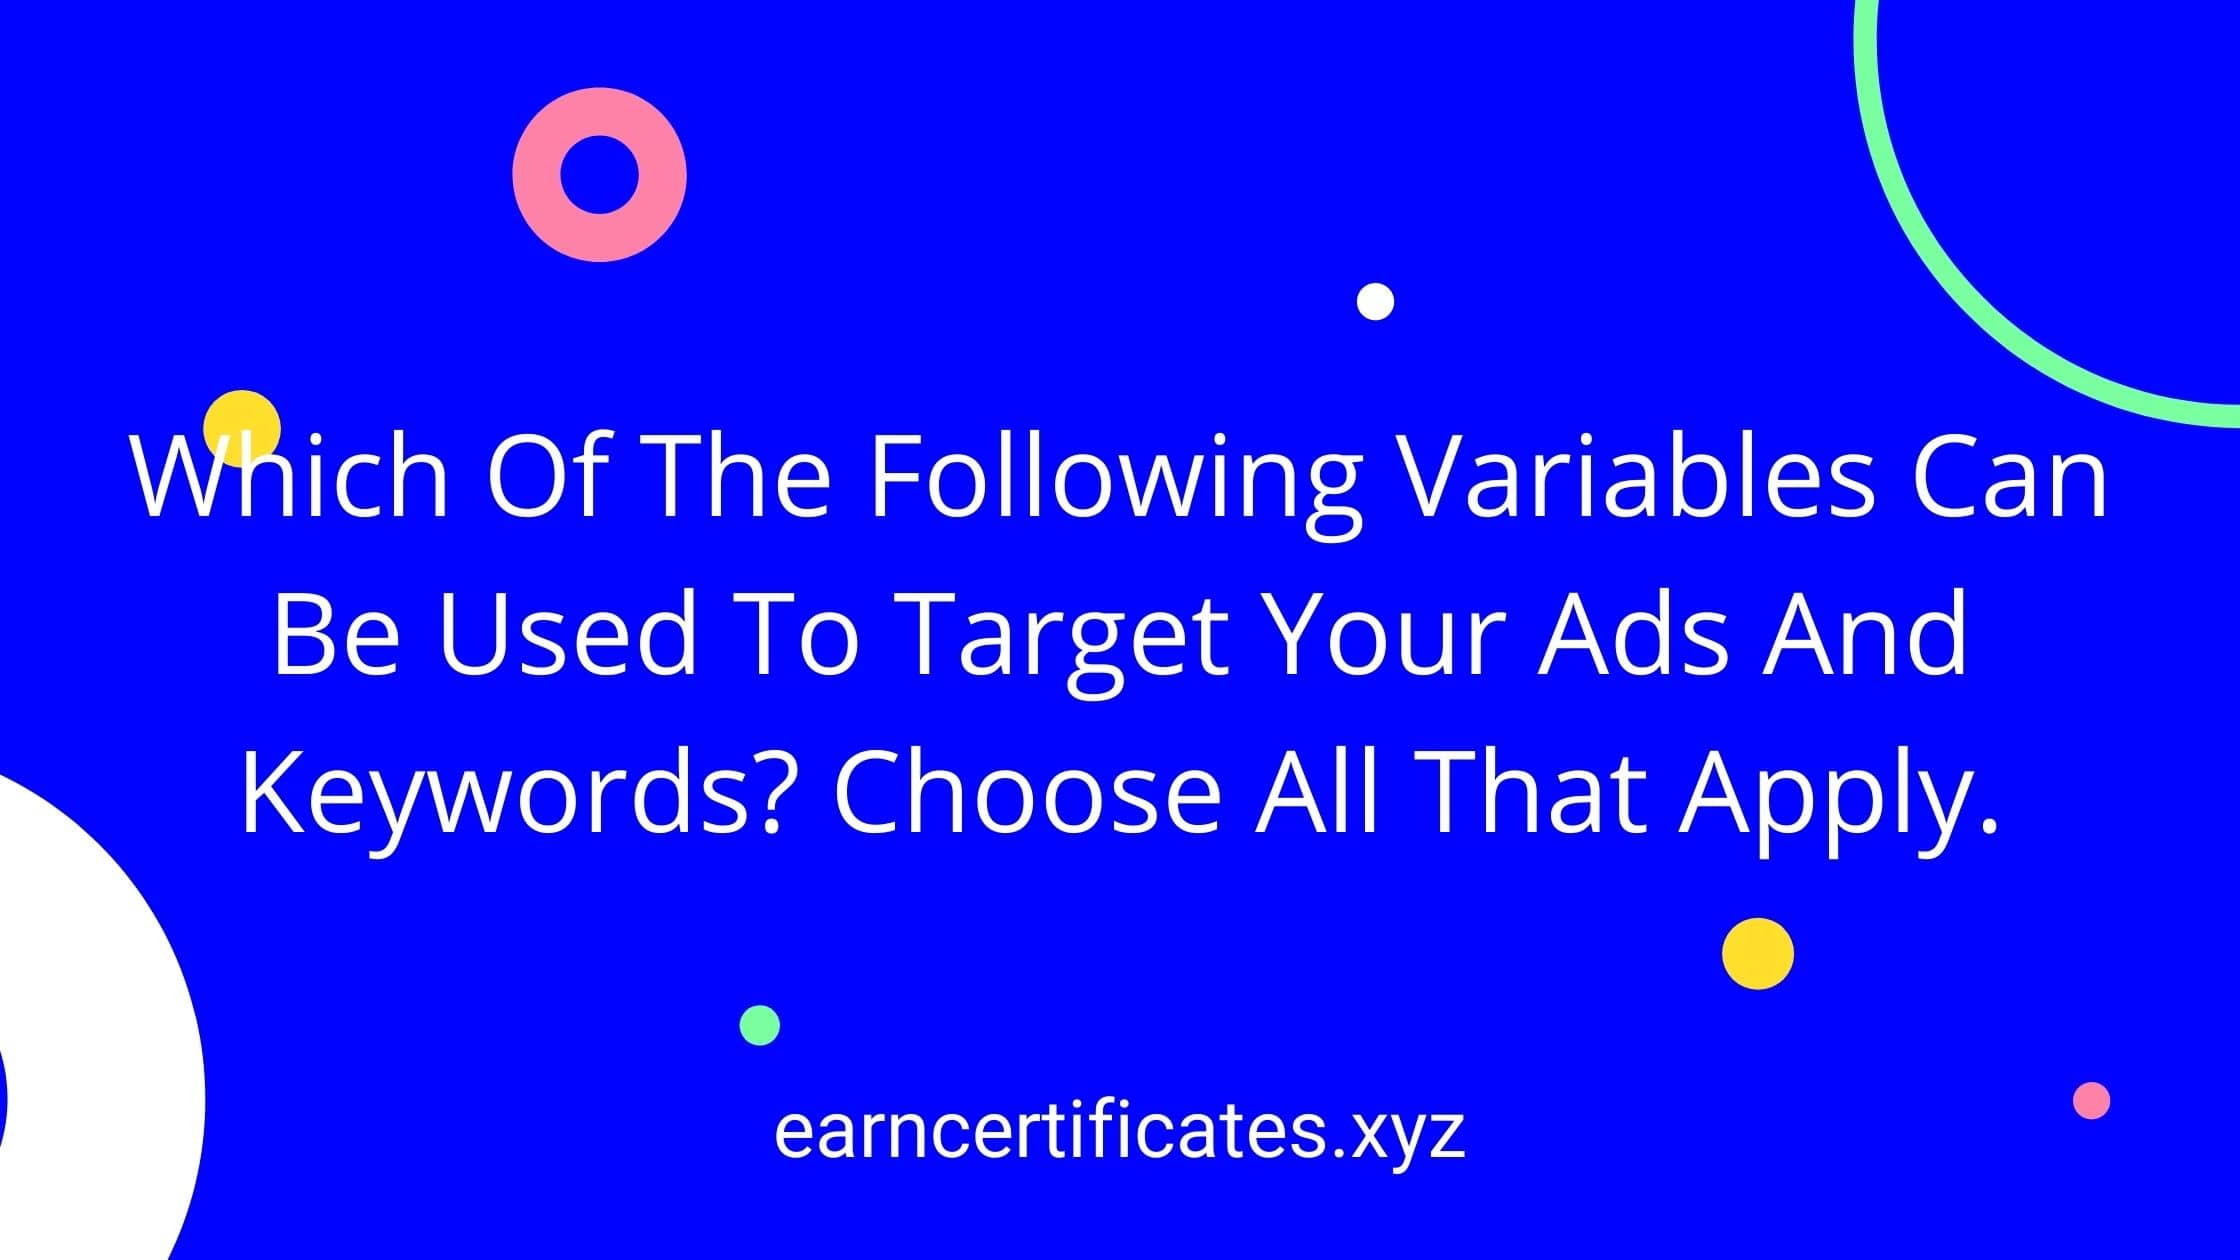 Which Of The Following Variables Can Be Used To Target Your Ads And Keywords? Choose All That Apply.